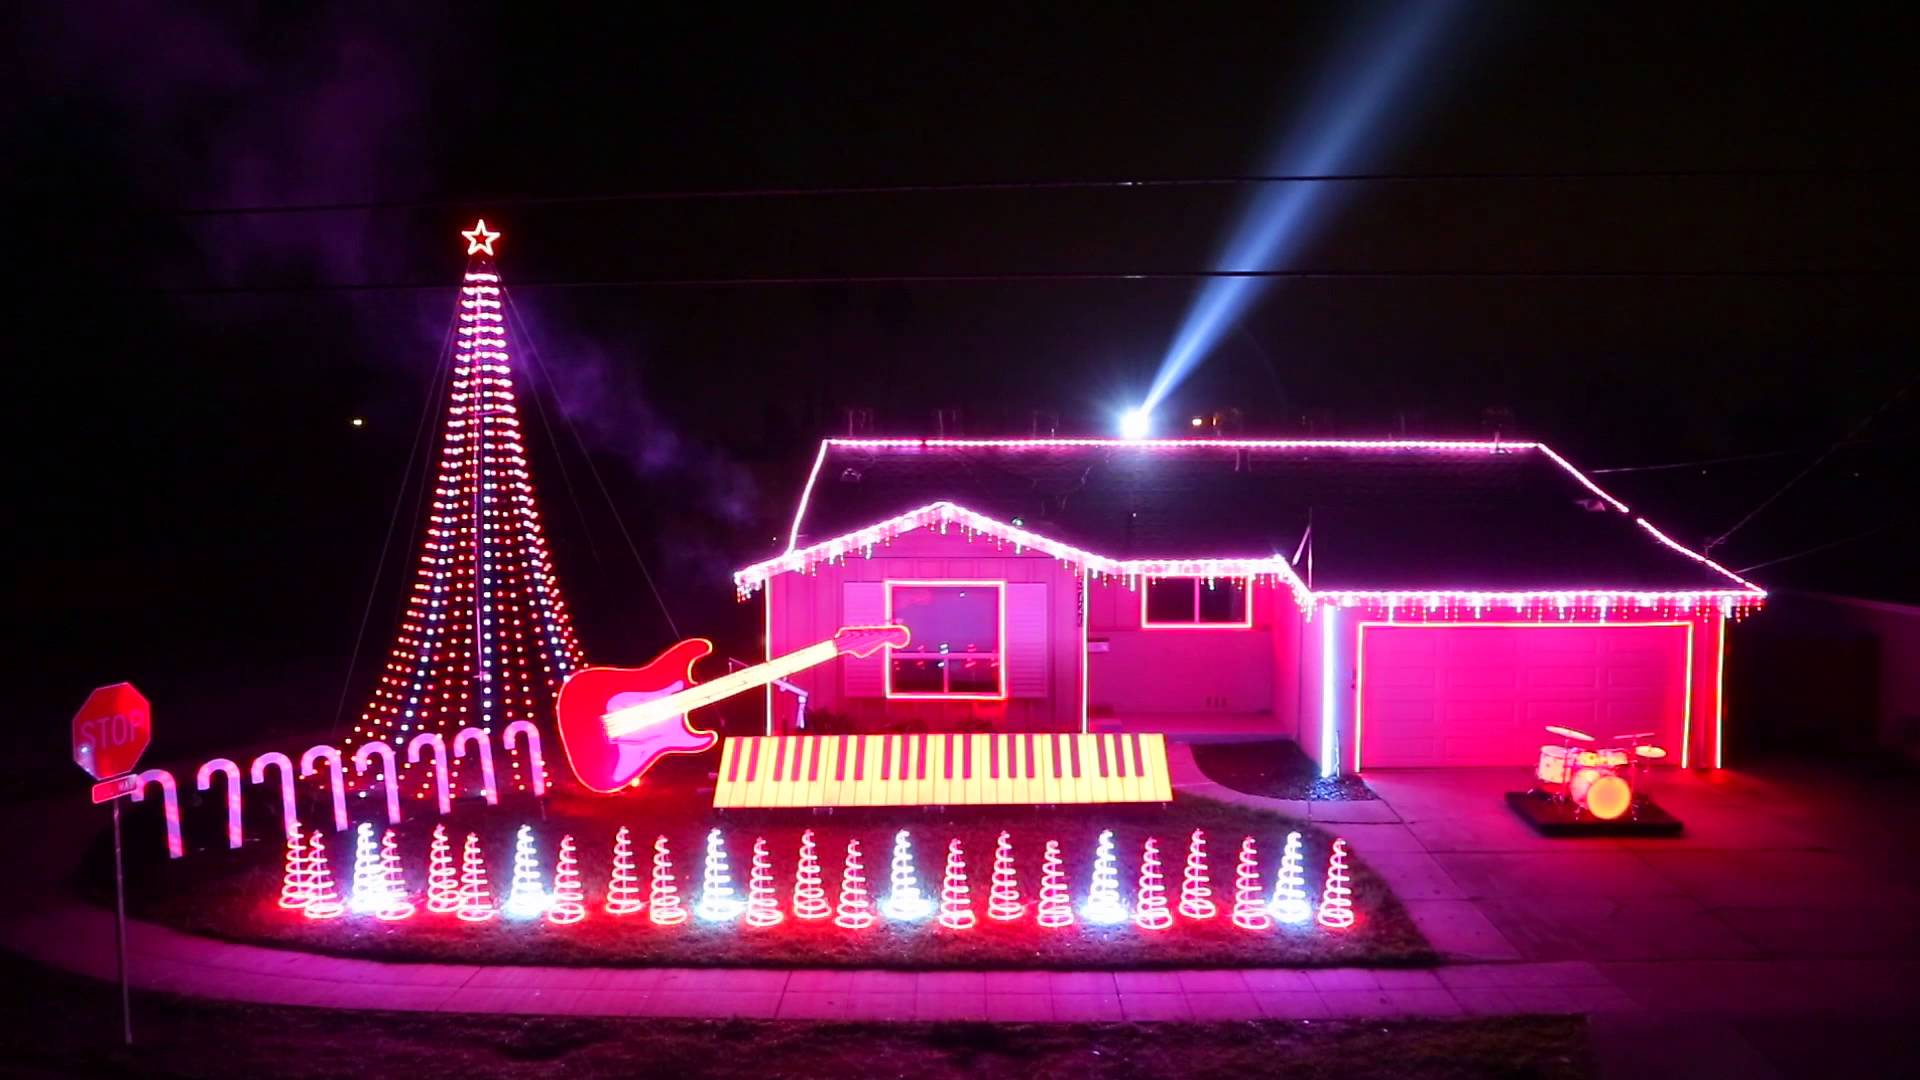 House turns into epic Star Wars Christmas Lights show - Nerd Reactor